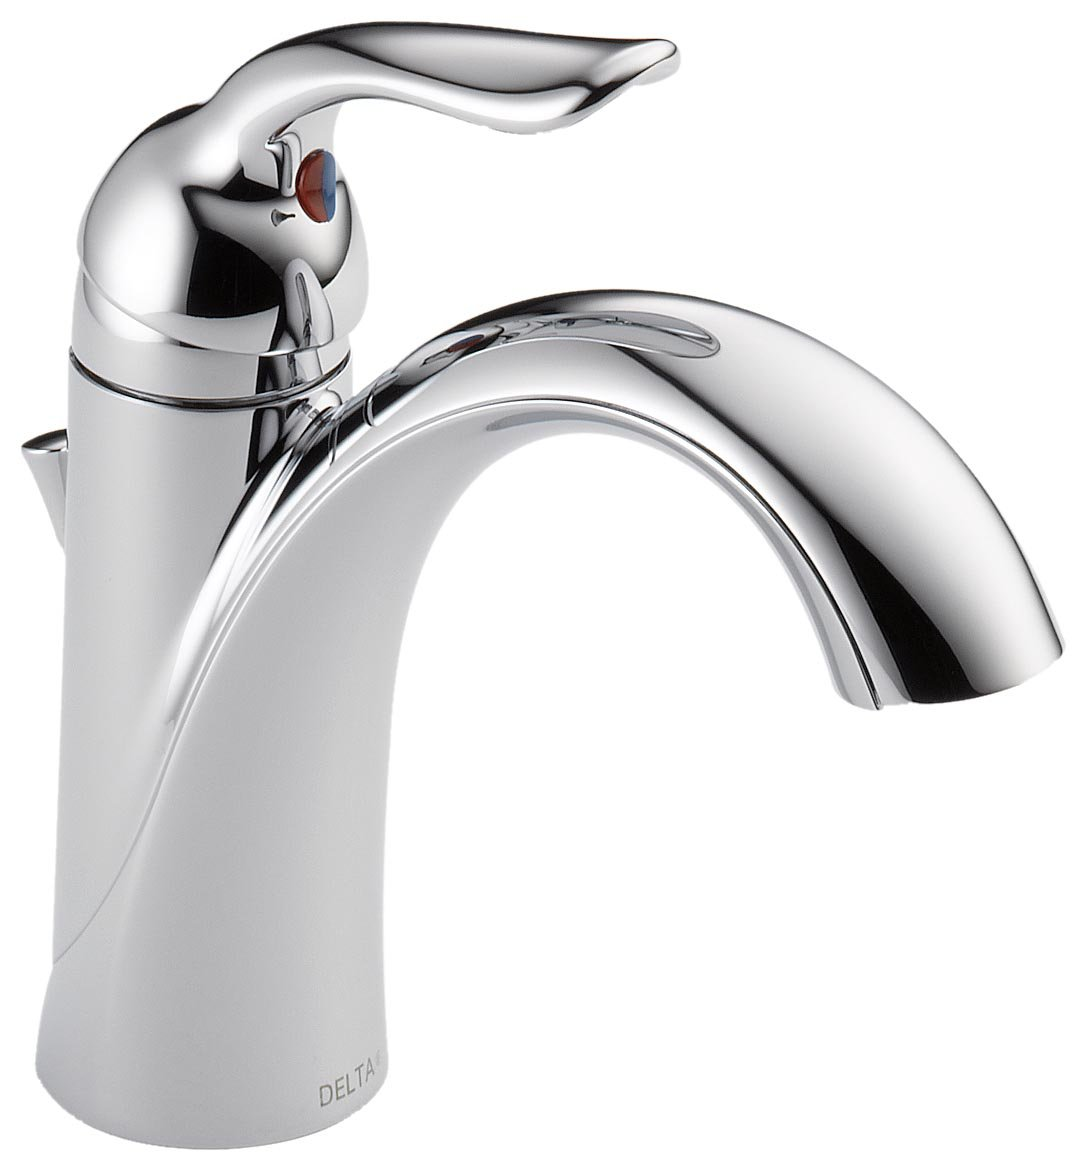 faucet sink toilets bathnewproducts bathroom and delta accessories faucets showers featured